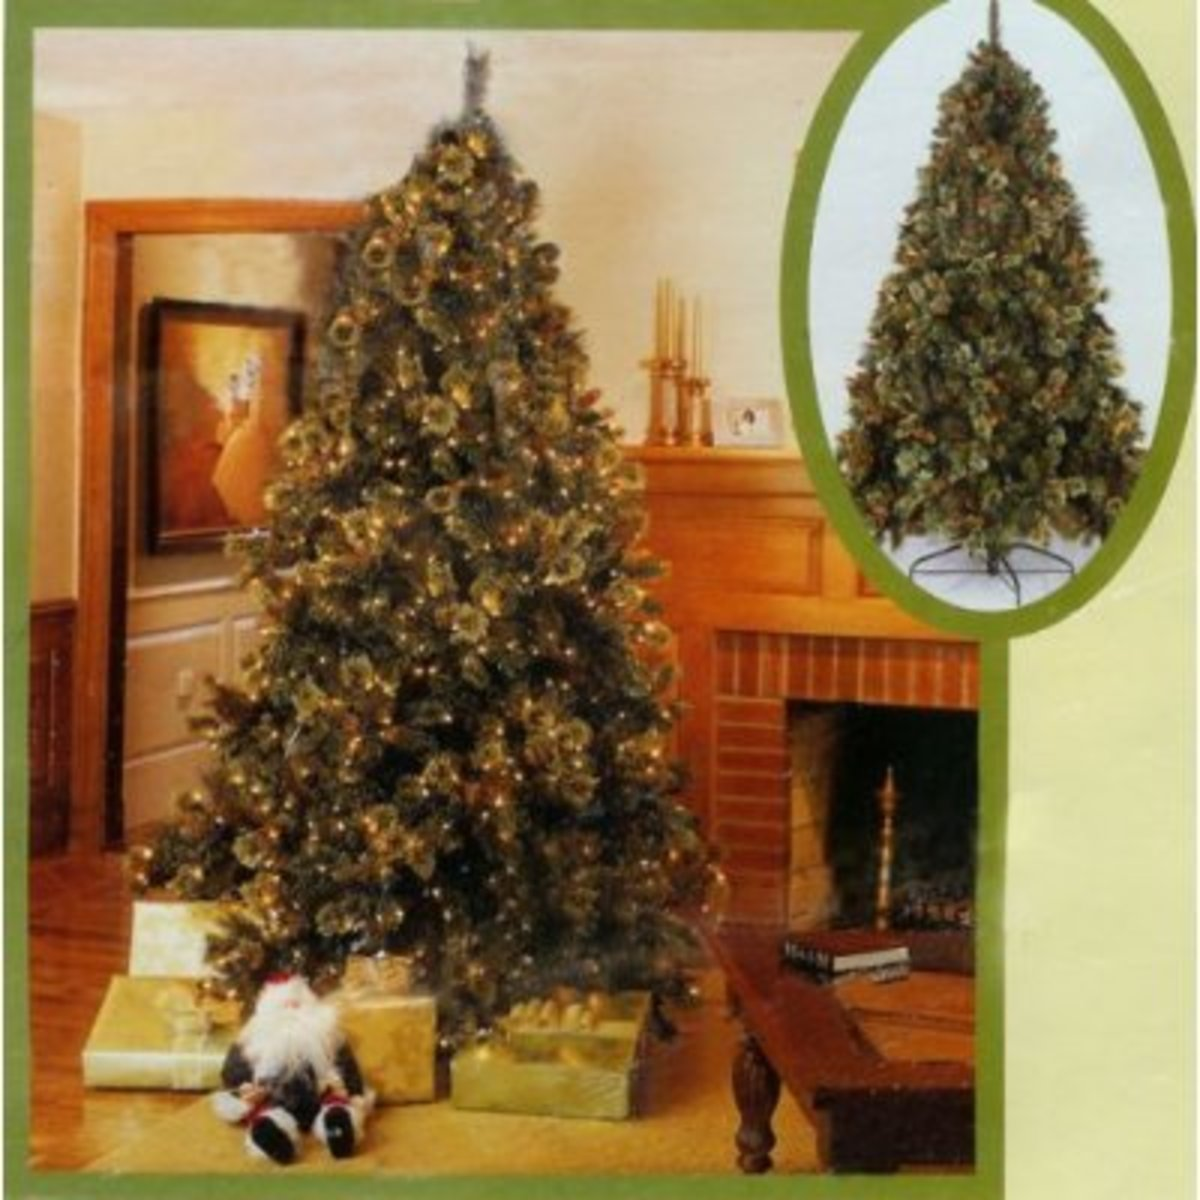 Artificial pre lit Christmas trees come in many sizes.